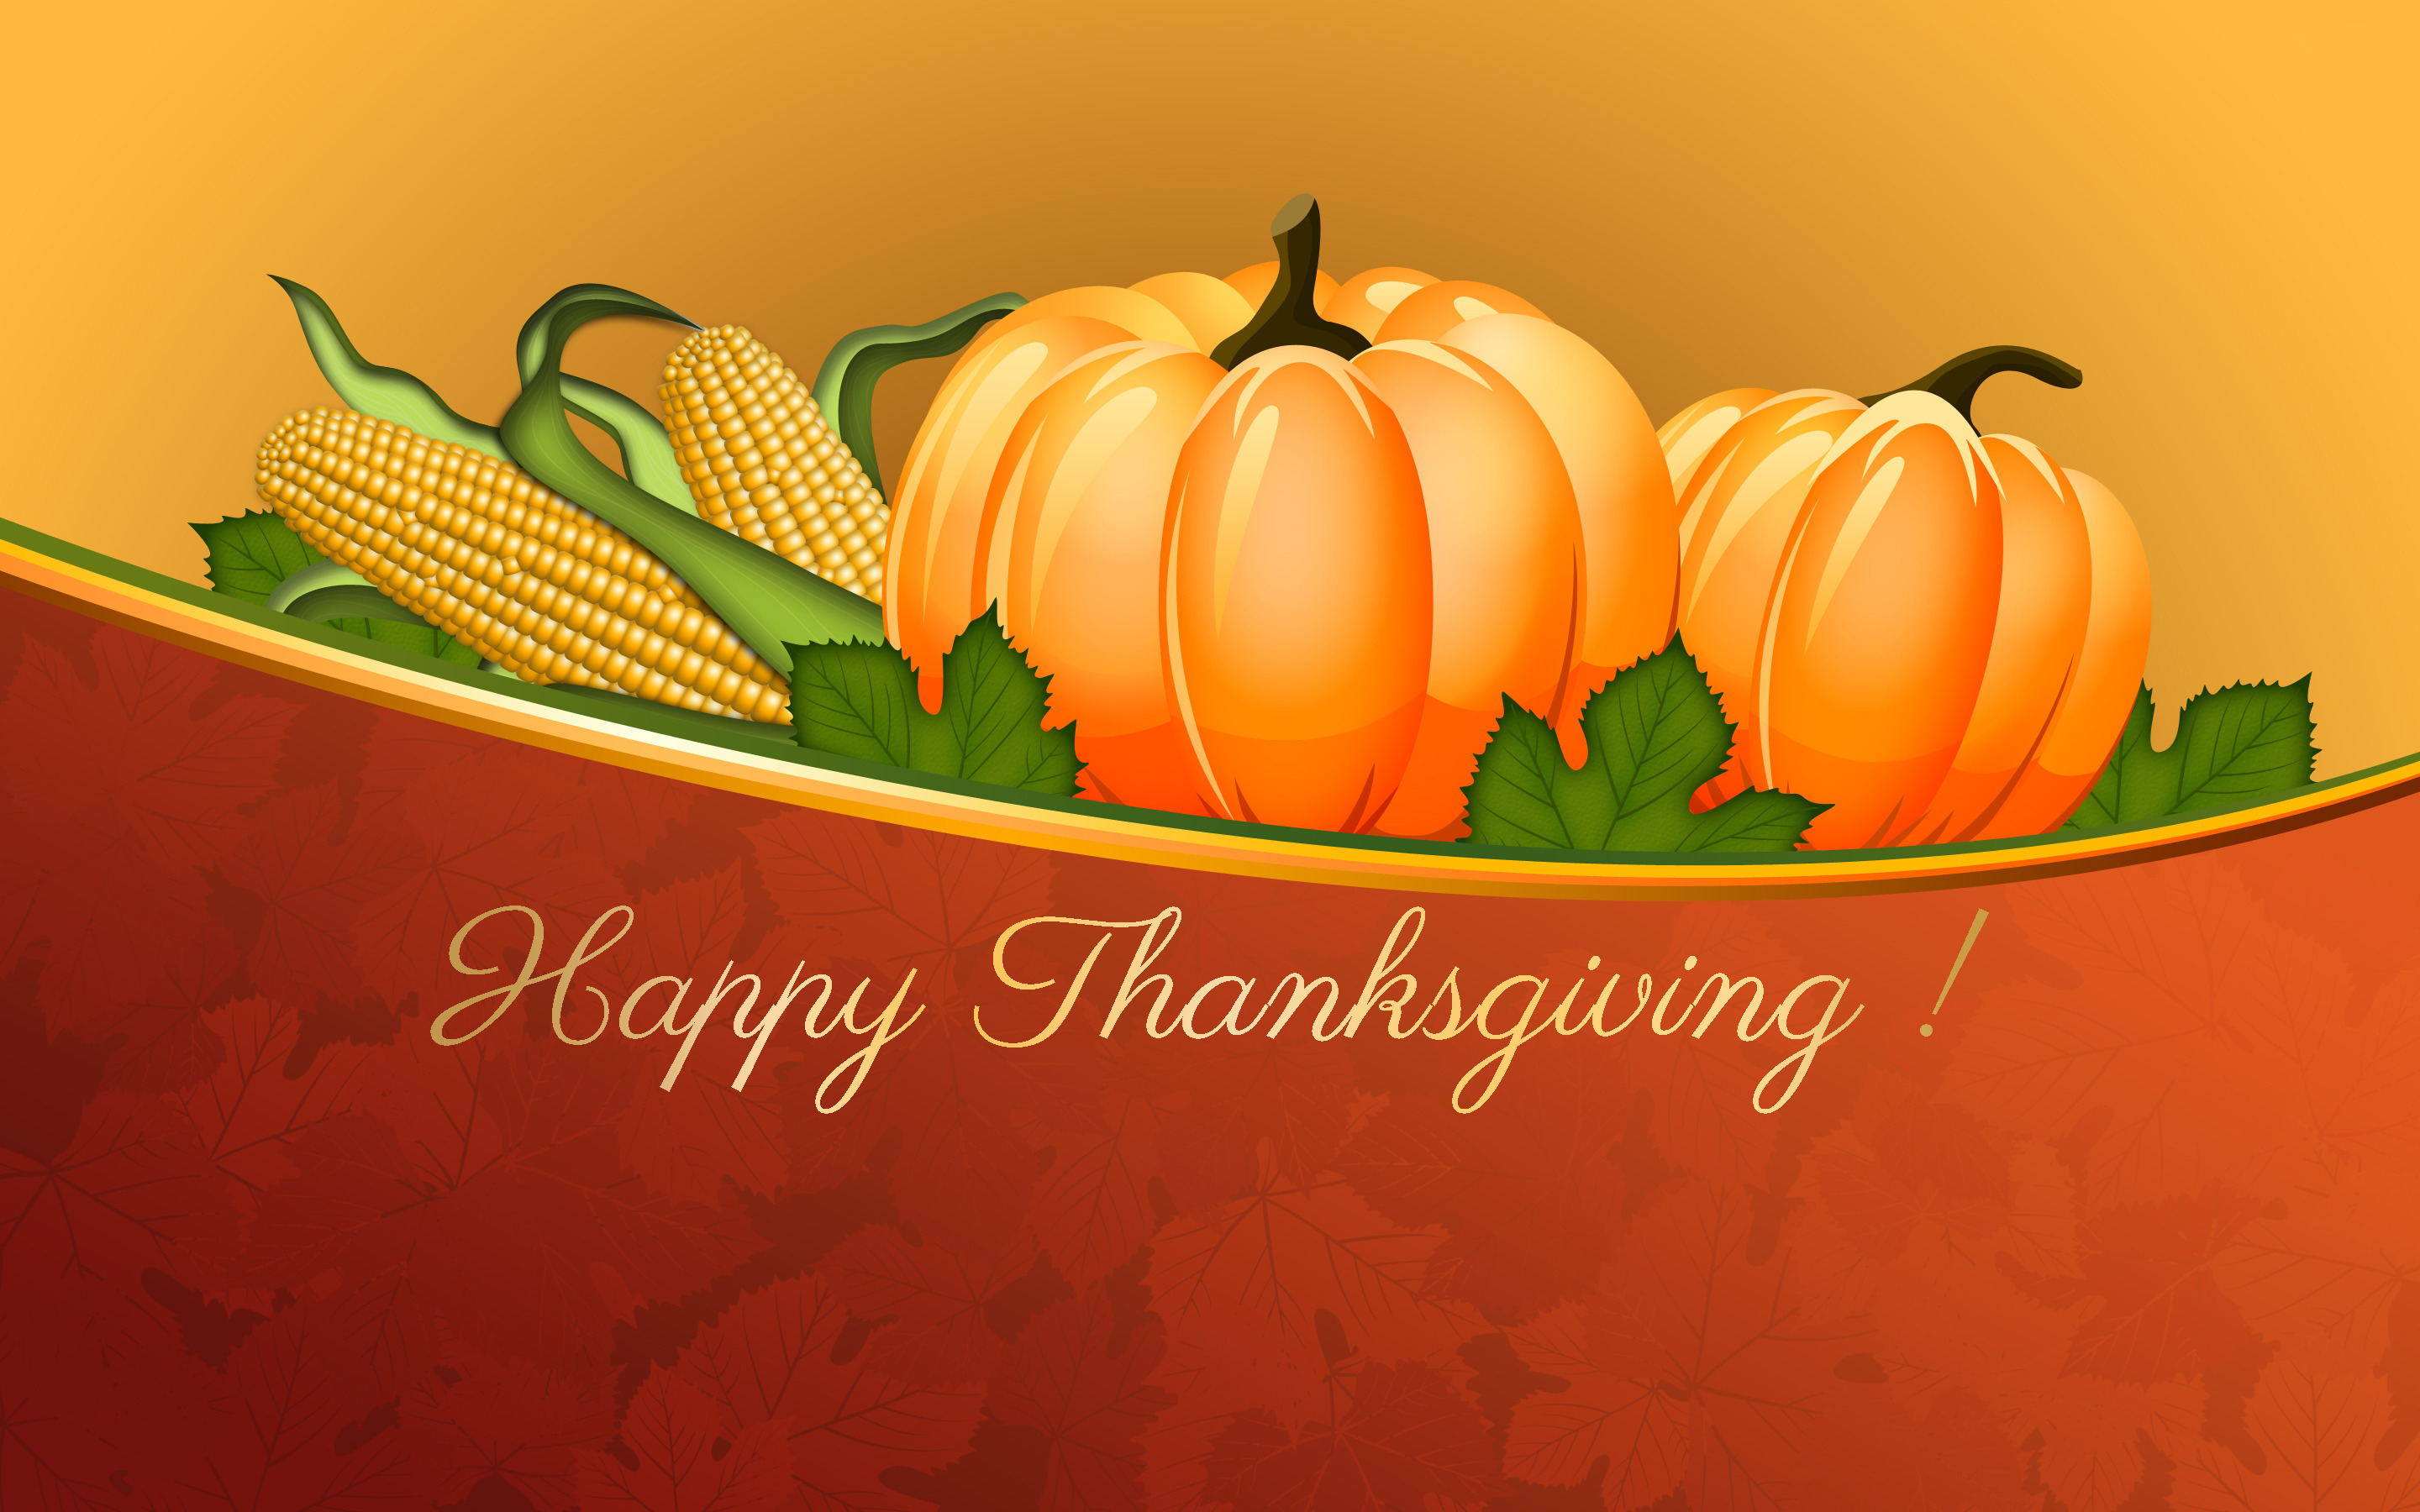 Thanksgiving wallpaper for WhatsApp